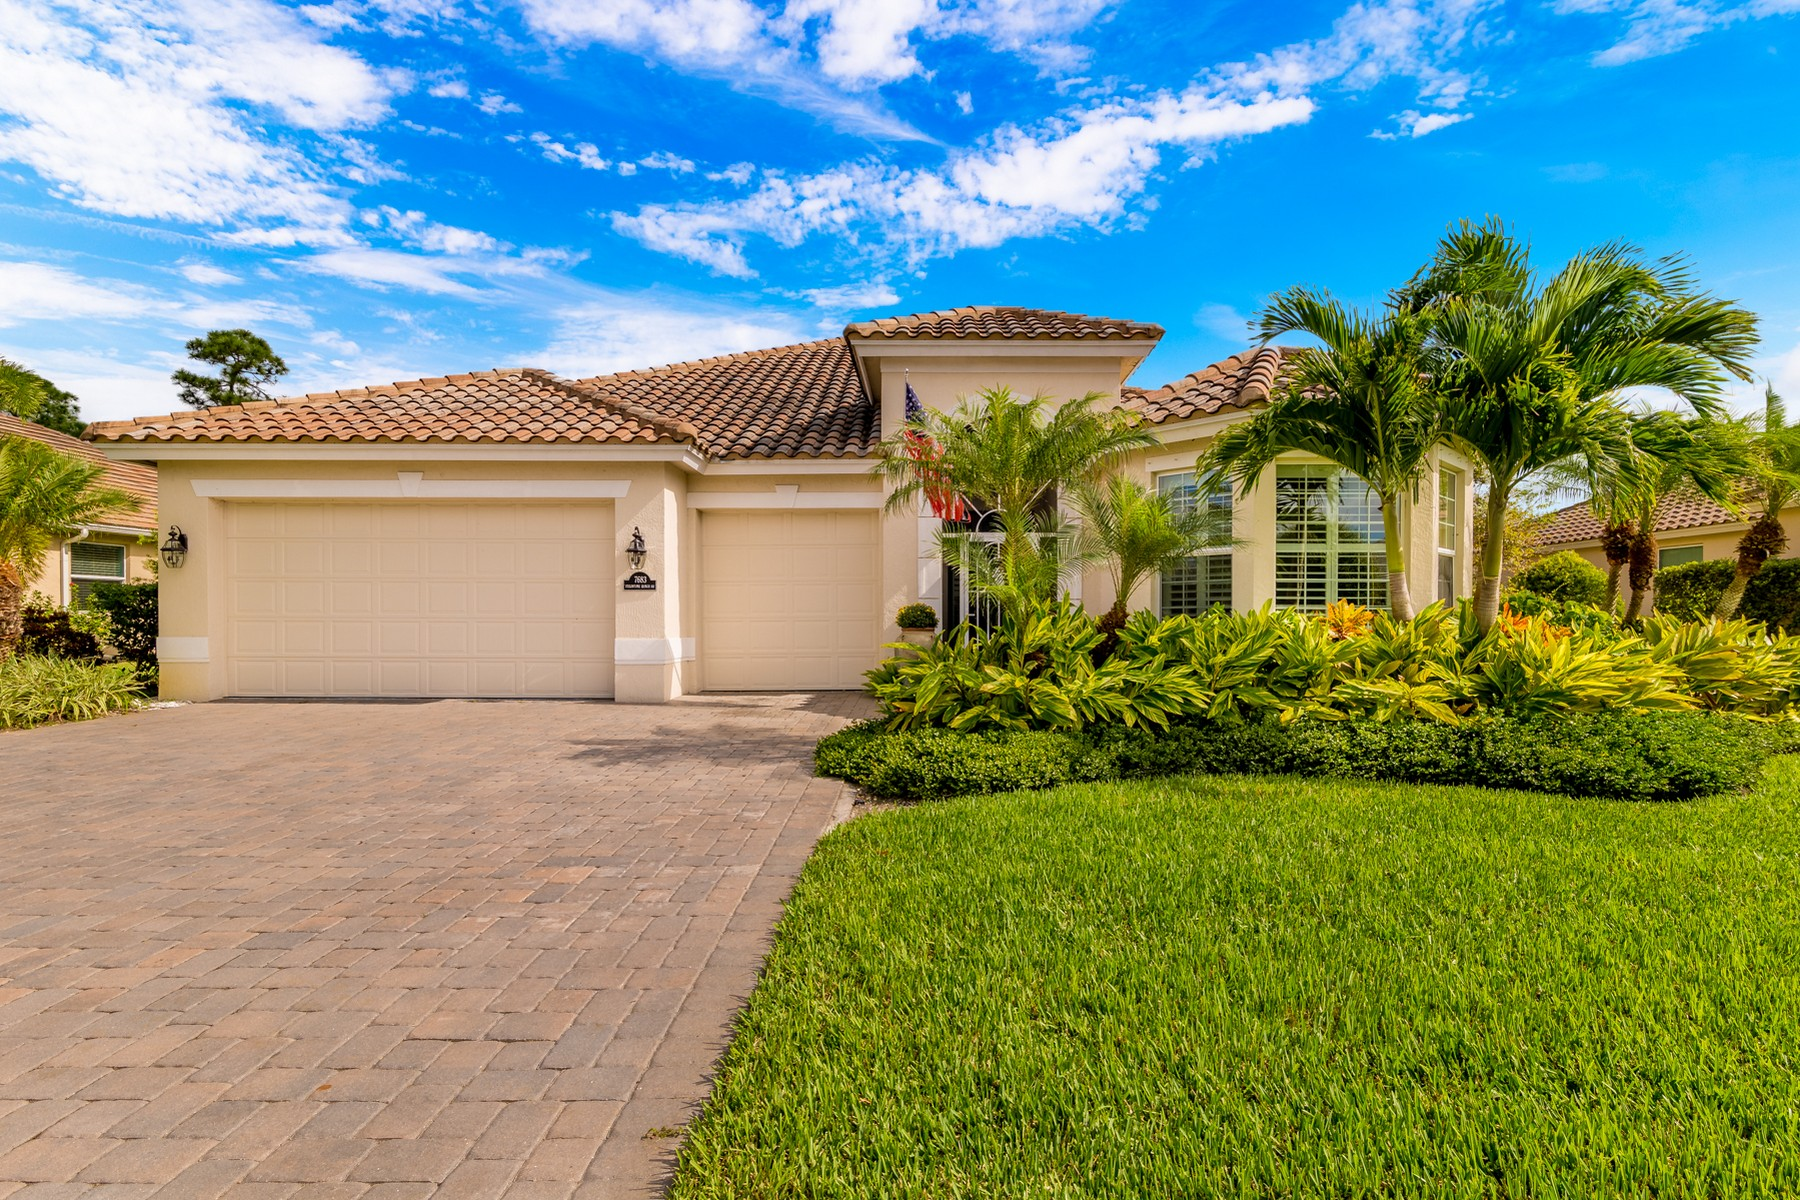 Single Family Home for Sale at Spectacular Pool Home with Beautiful Upgrades 7683 Fieldstone Ranch SQ. Vero Beach, Florida 32967 United States